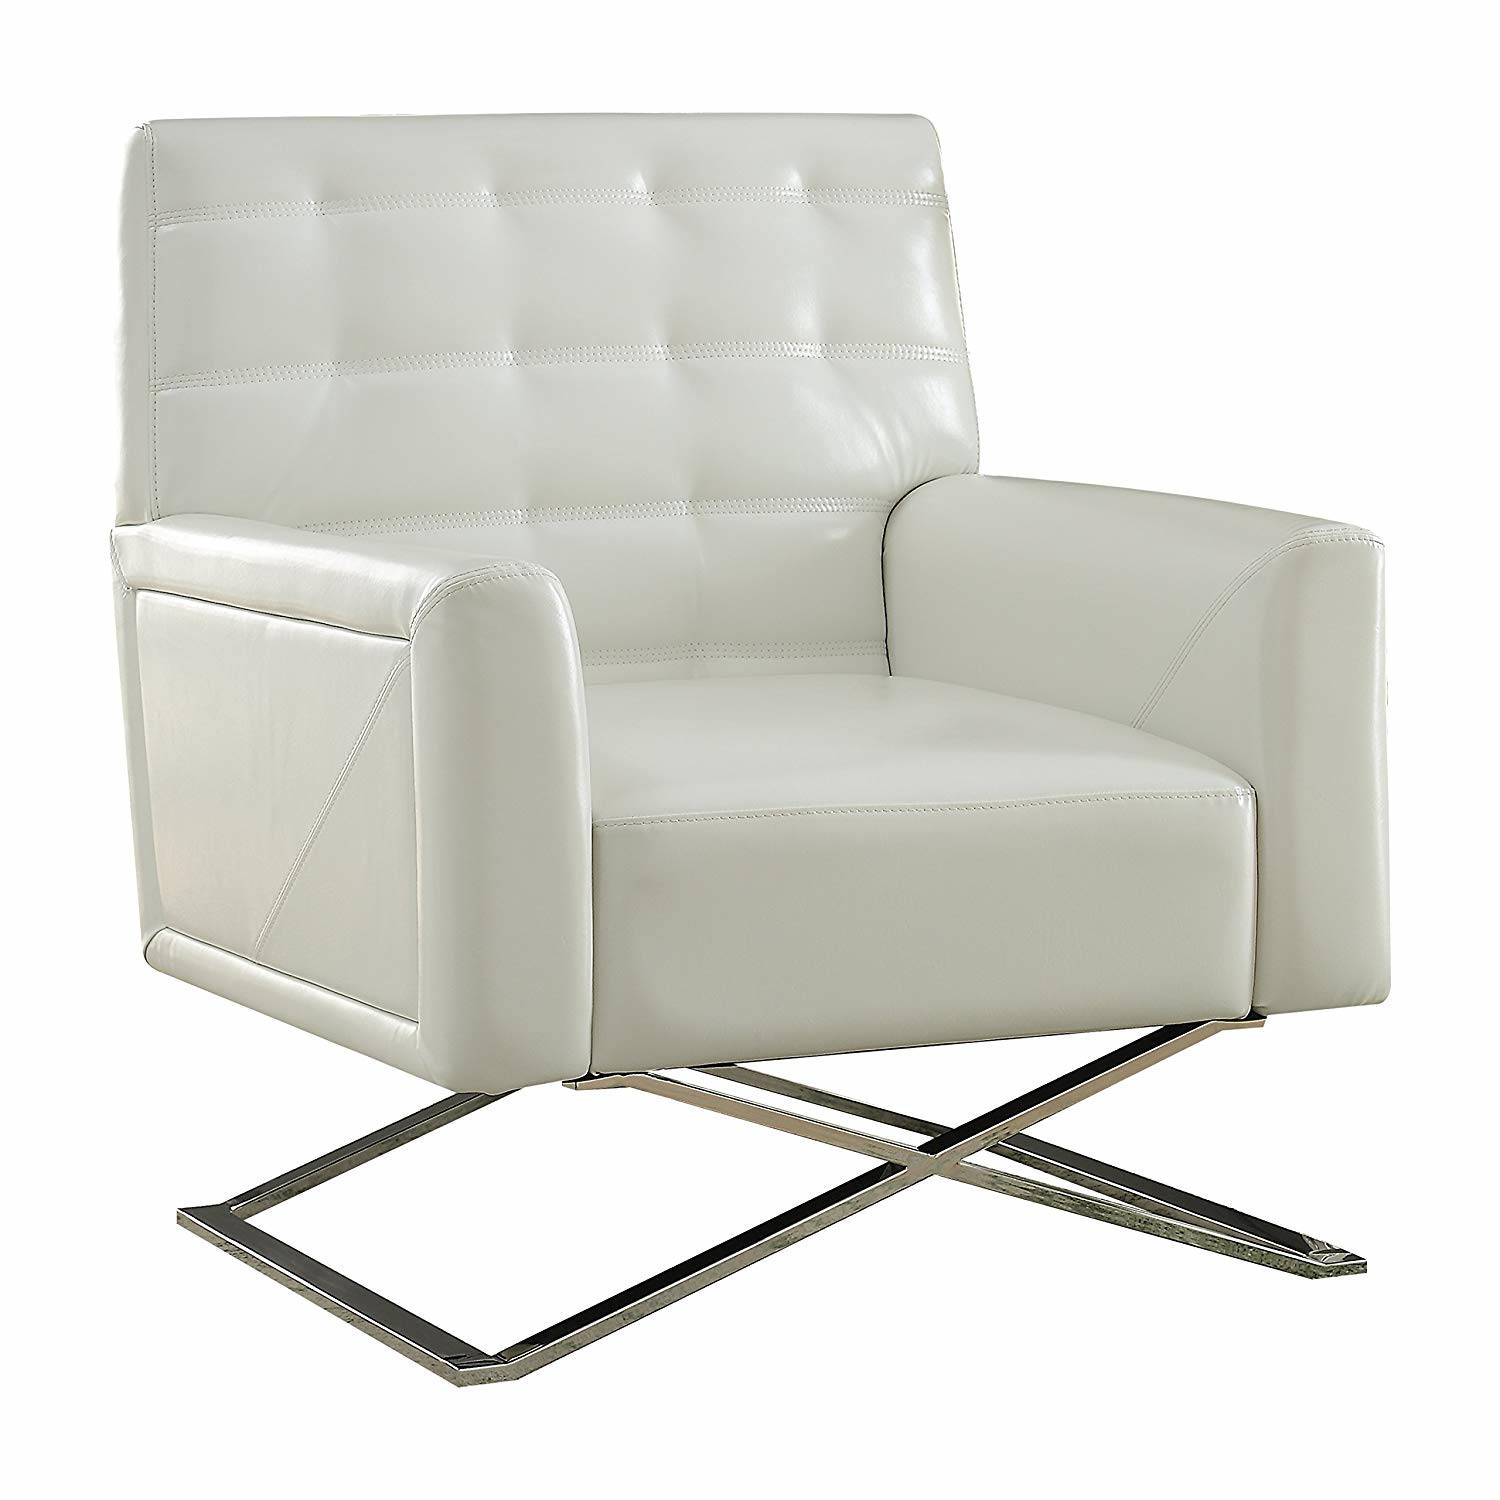 Excellent Acme Furniture Rafael White Tufted Back Accent Chair Ibusinesslaw Wood Chair Design Ideas Ibusinesslaworg